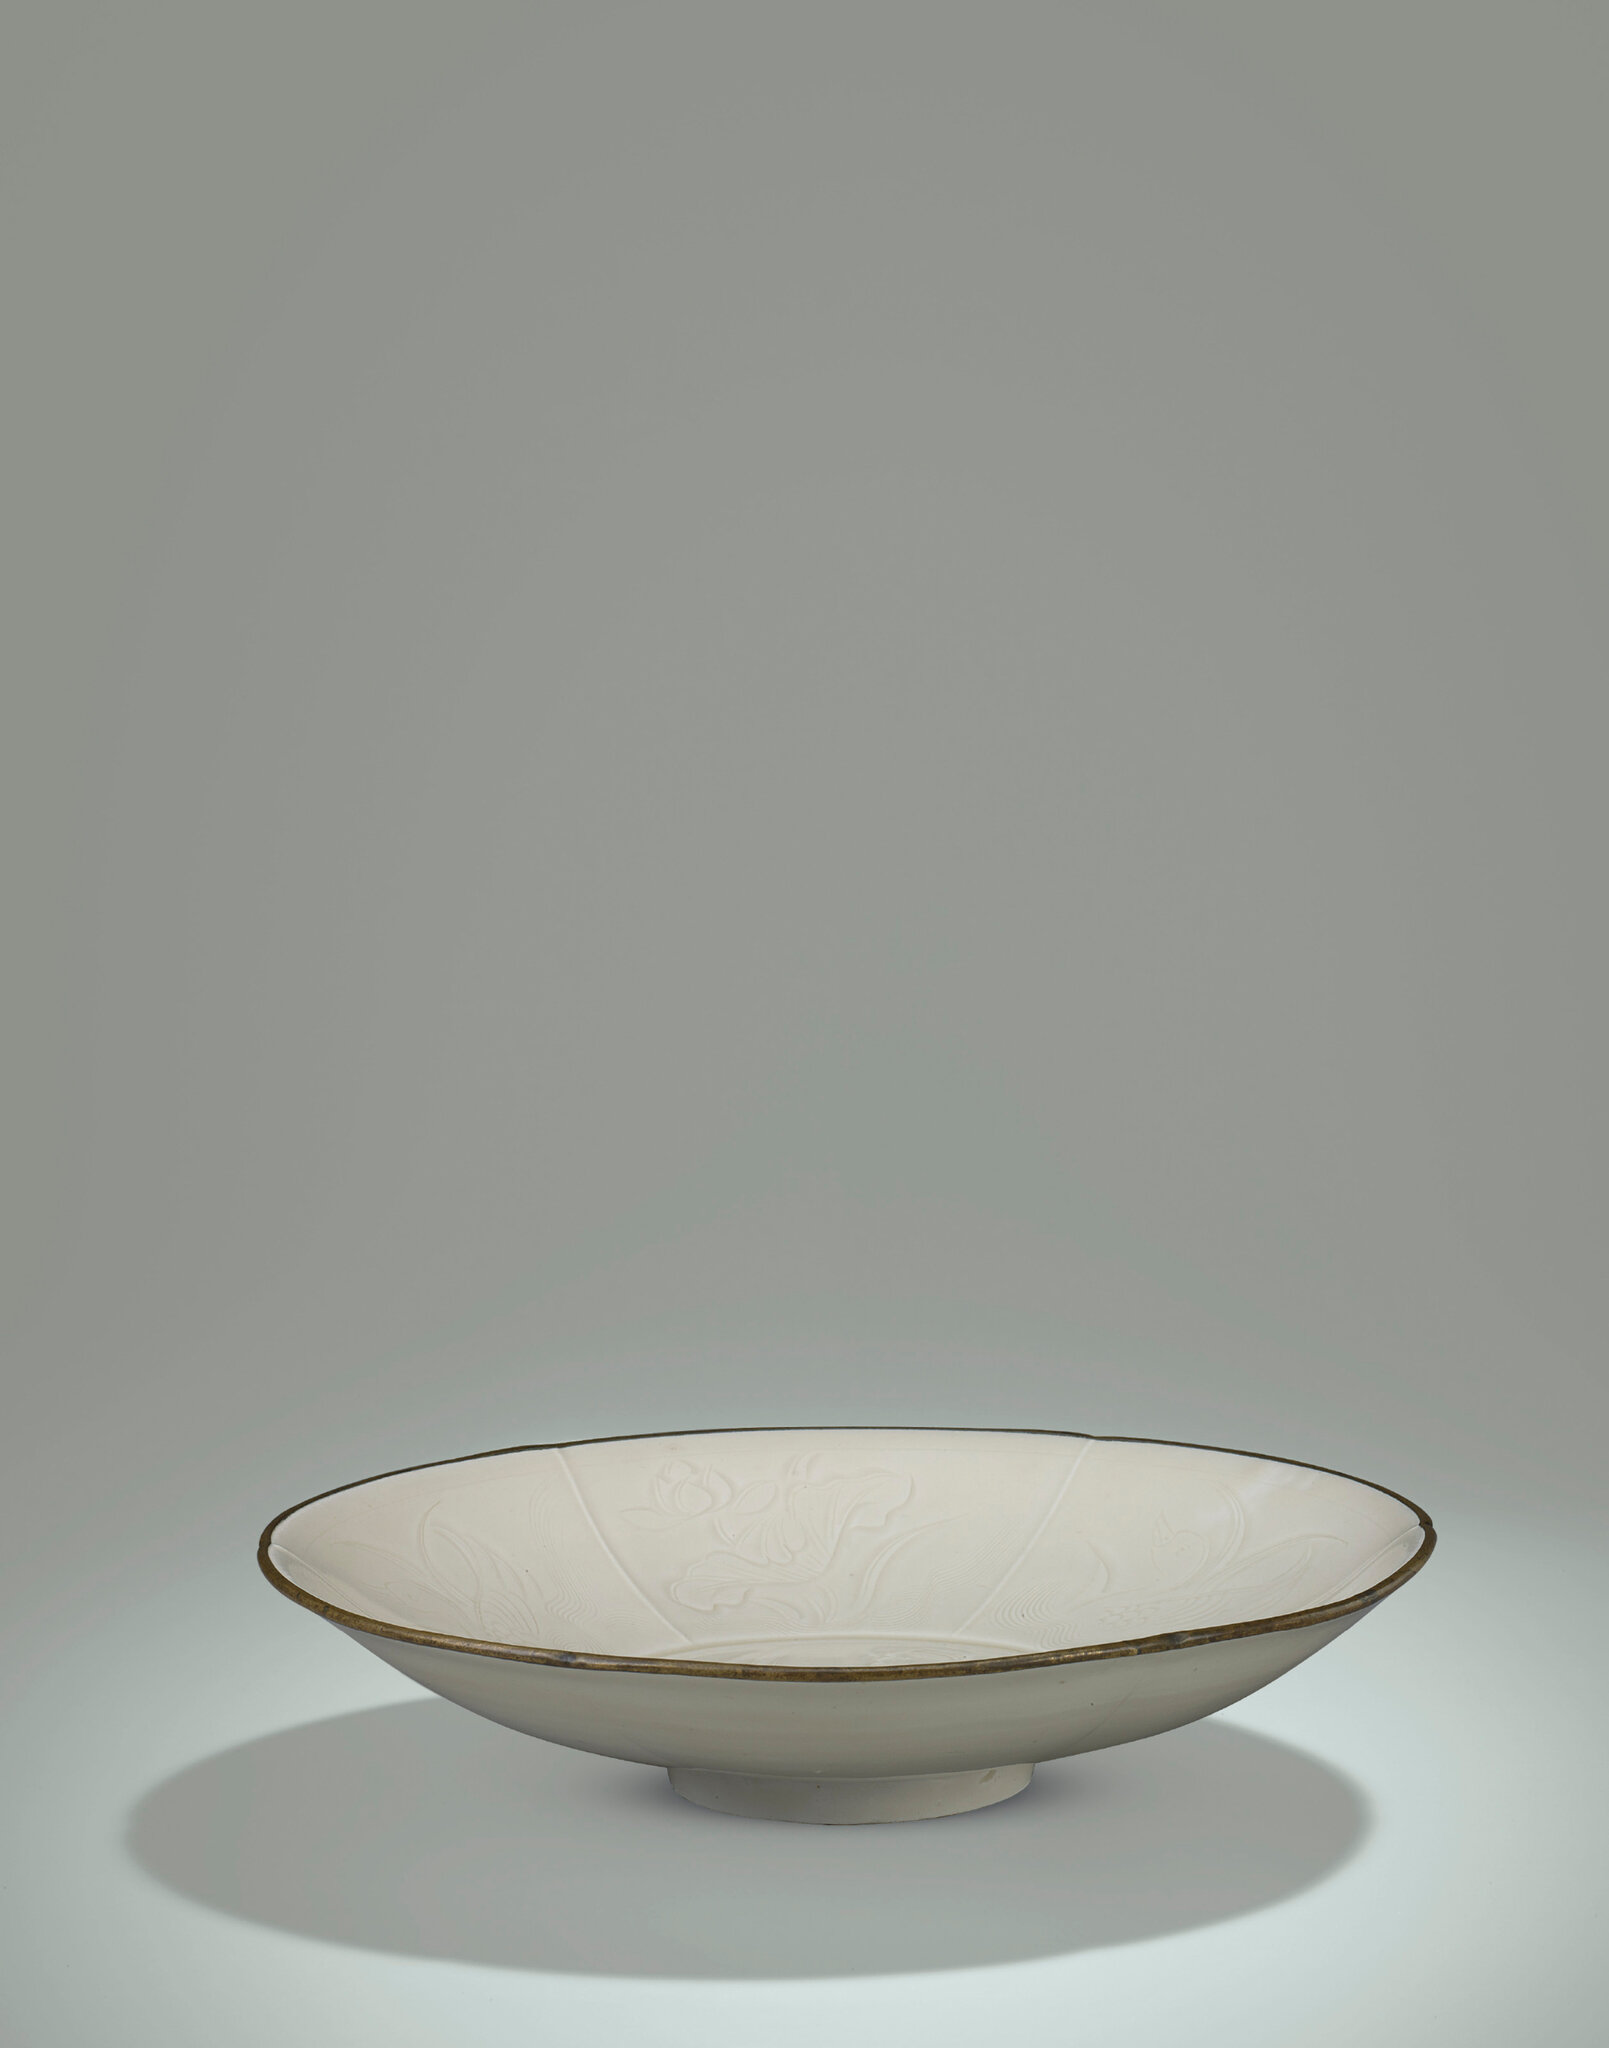 2014_HGK_03323_3211_001(an_important_fine_and_rare_ding_floral-lobed_shallow_bowl_northern_son)